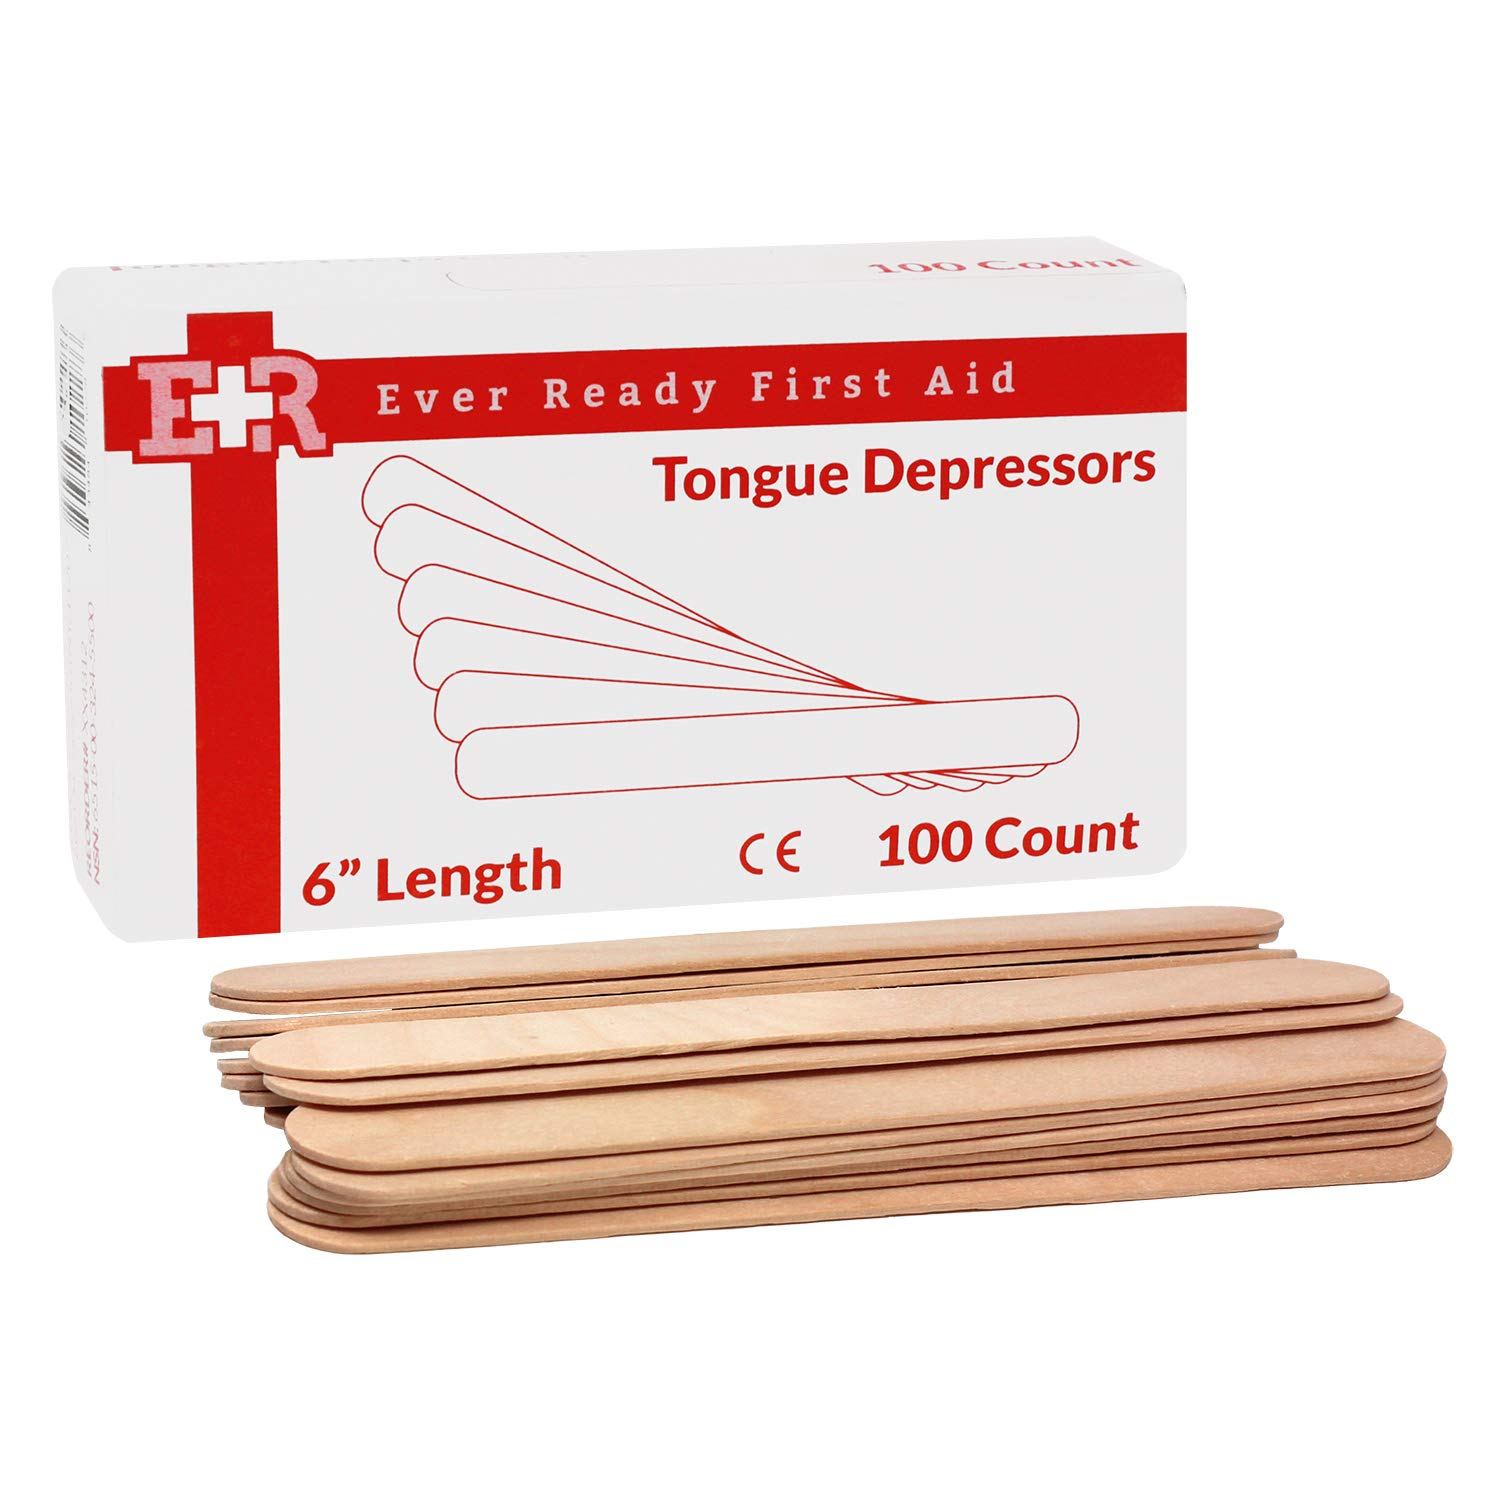 Ever Ready First Aid 6'' Tongue Depressors - 5000 Count